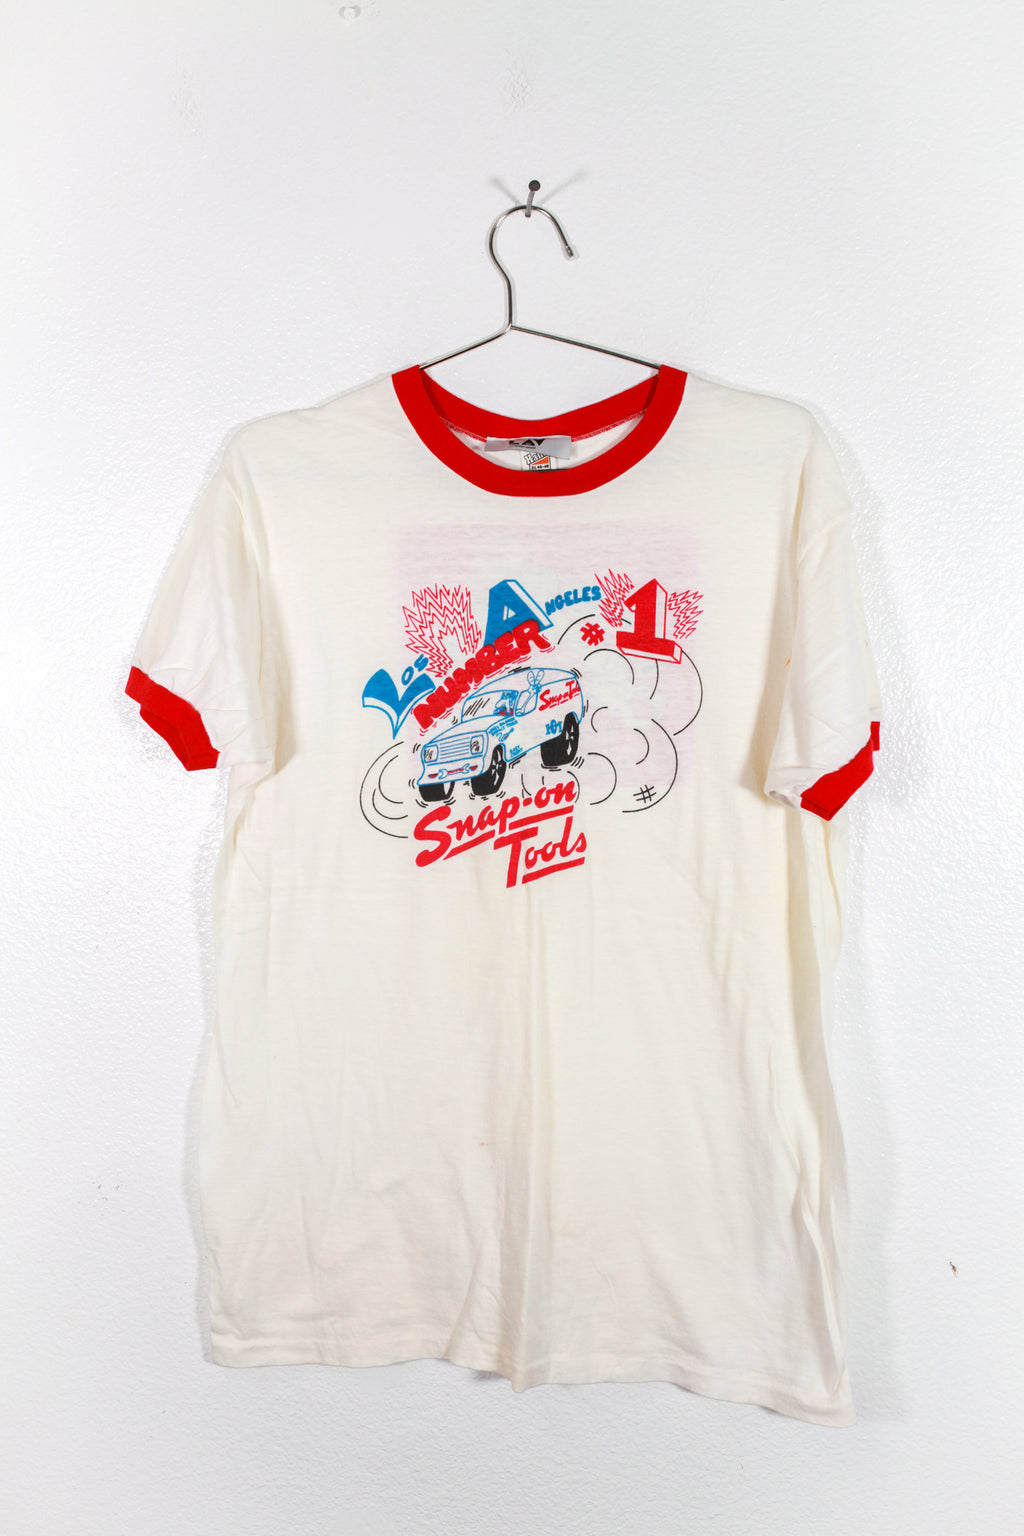 Vintage LA Snap On Tools Tee